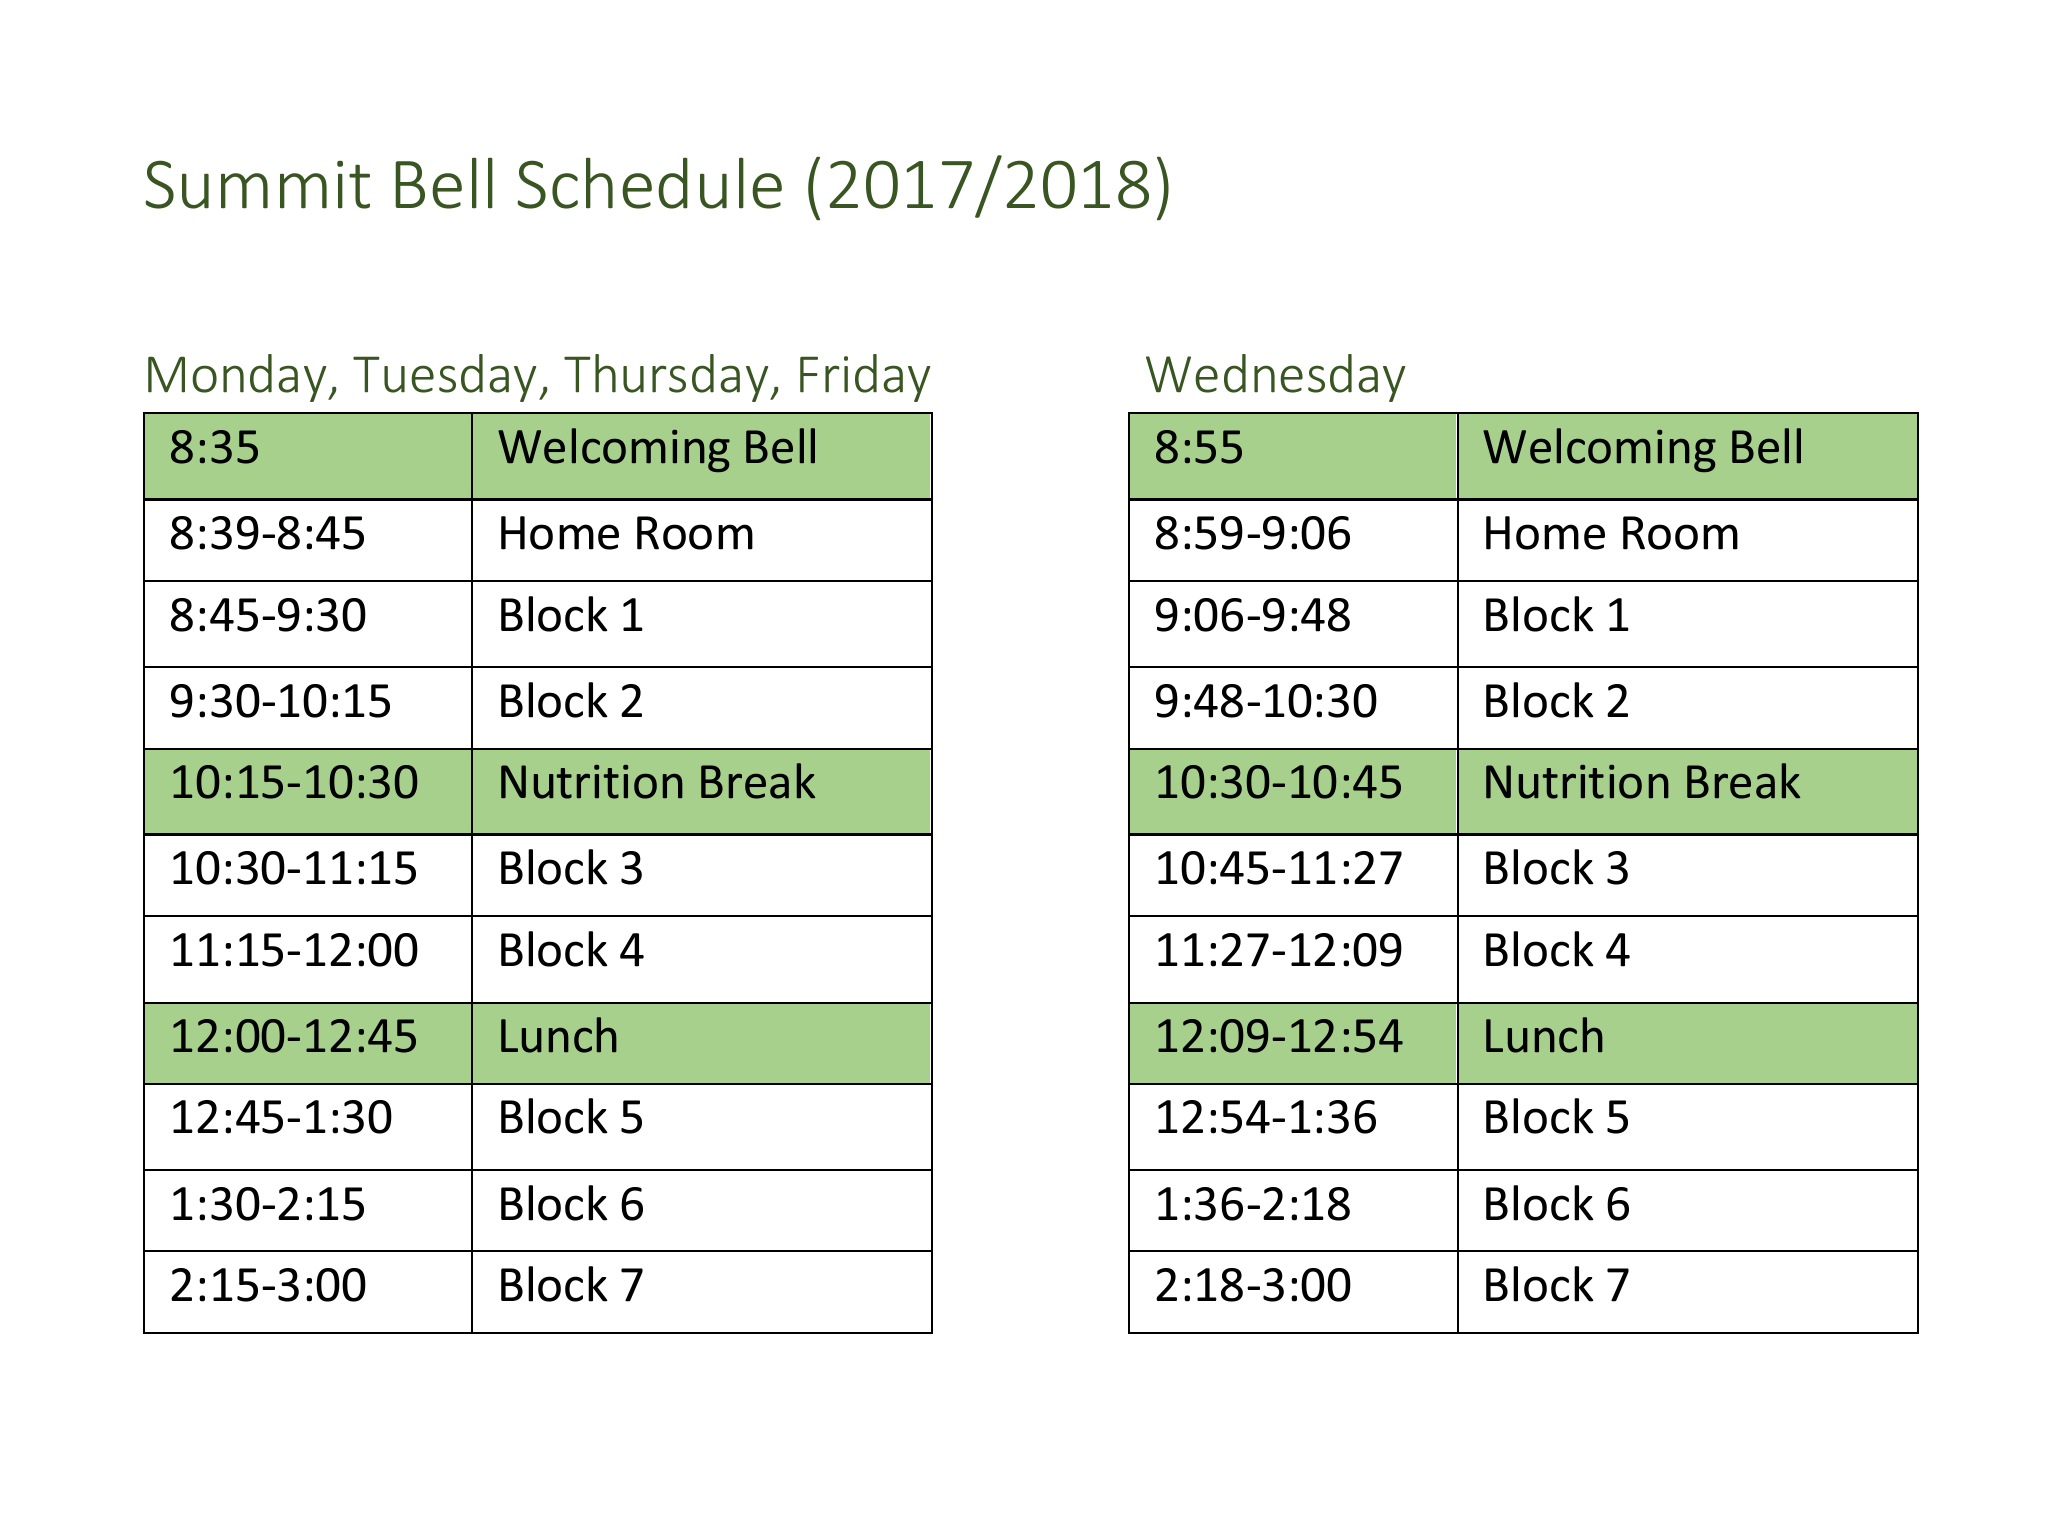 Summit Bell Schedule 2017-2018.PNG